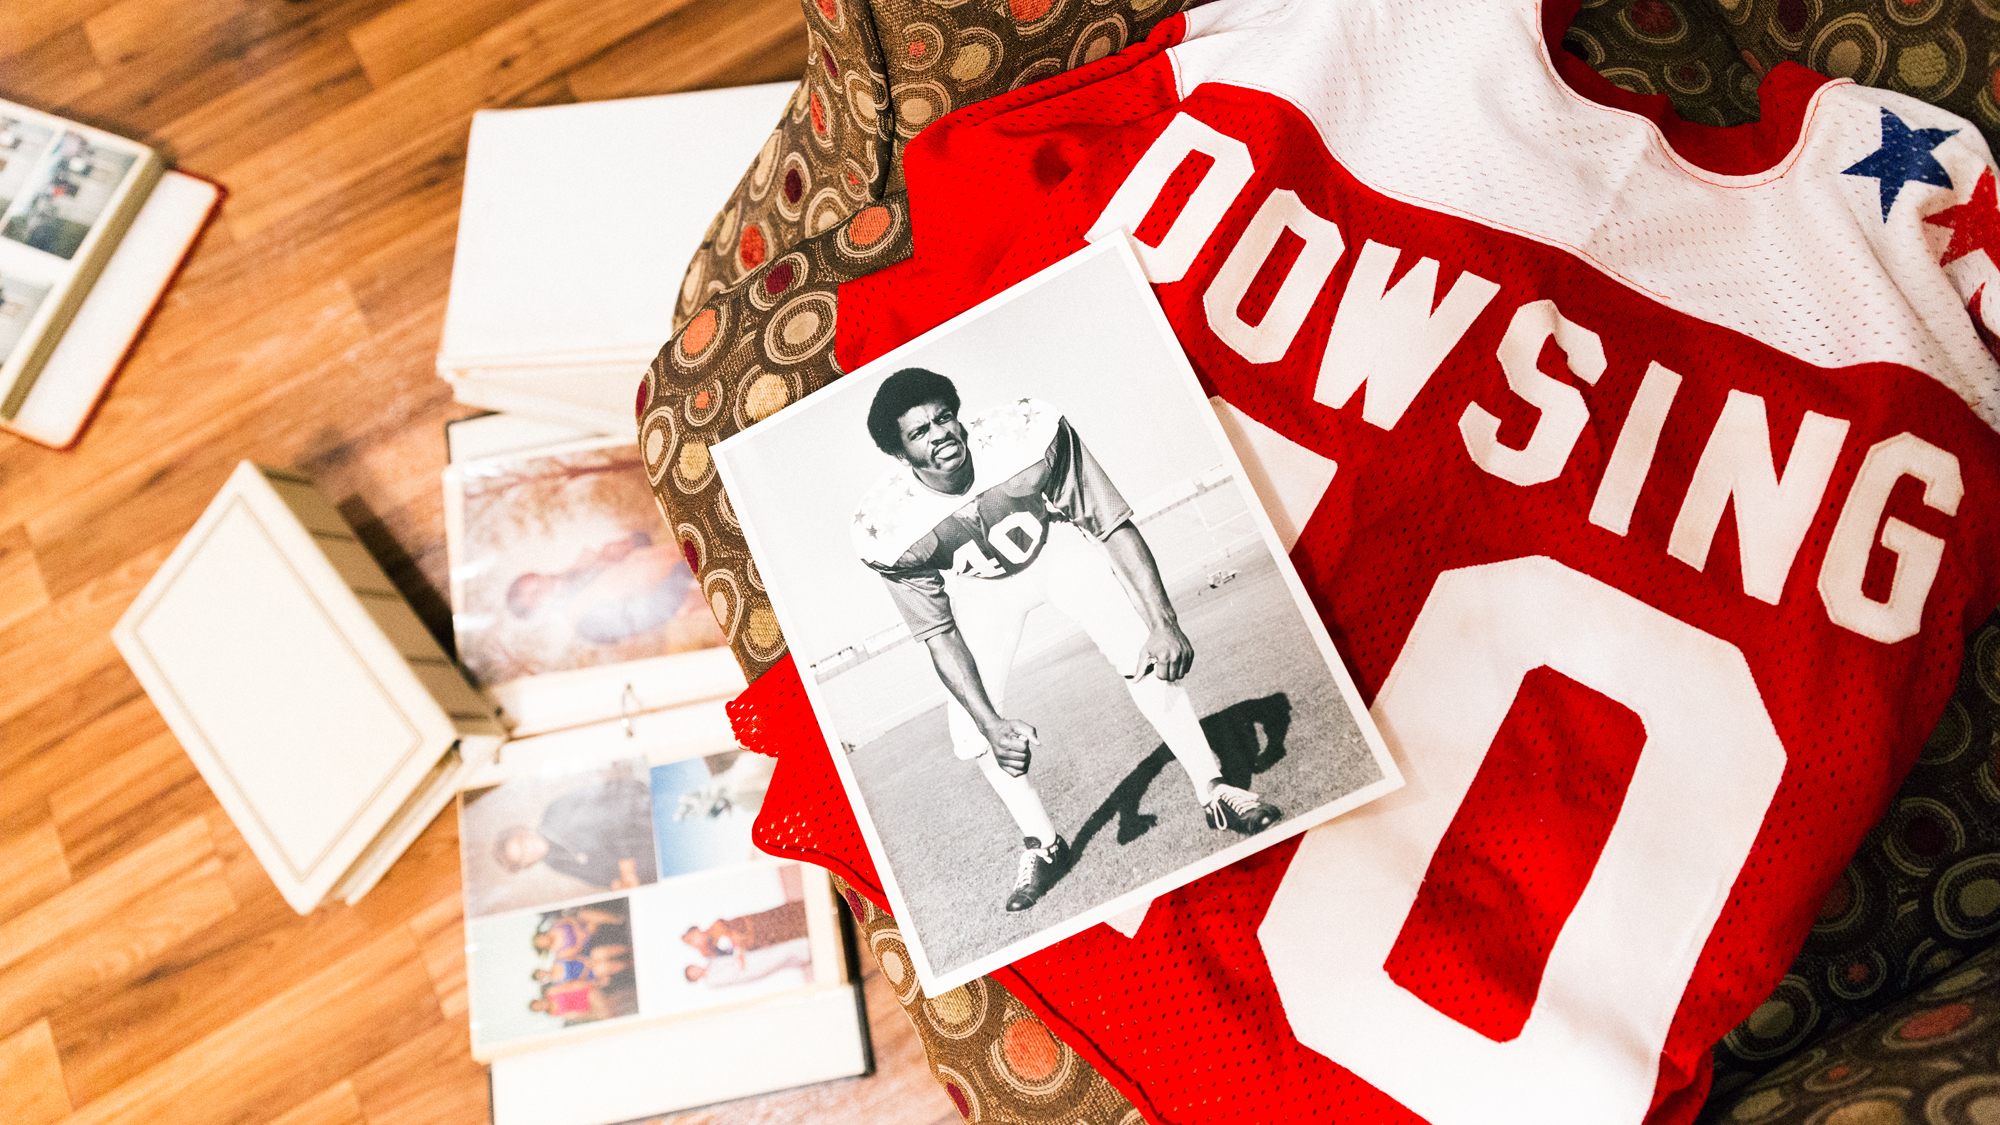 Frank's photo and jersey from the 1973 Hula Bowl